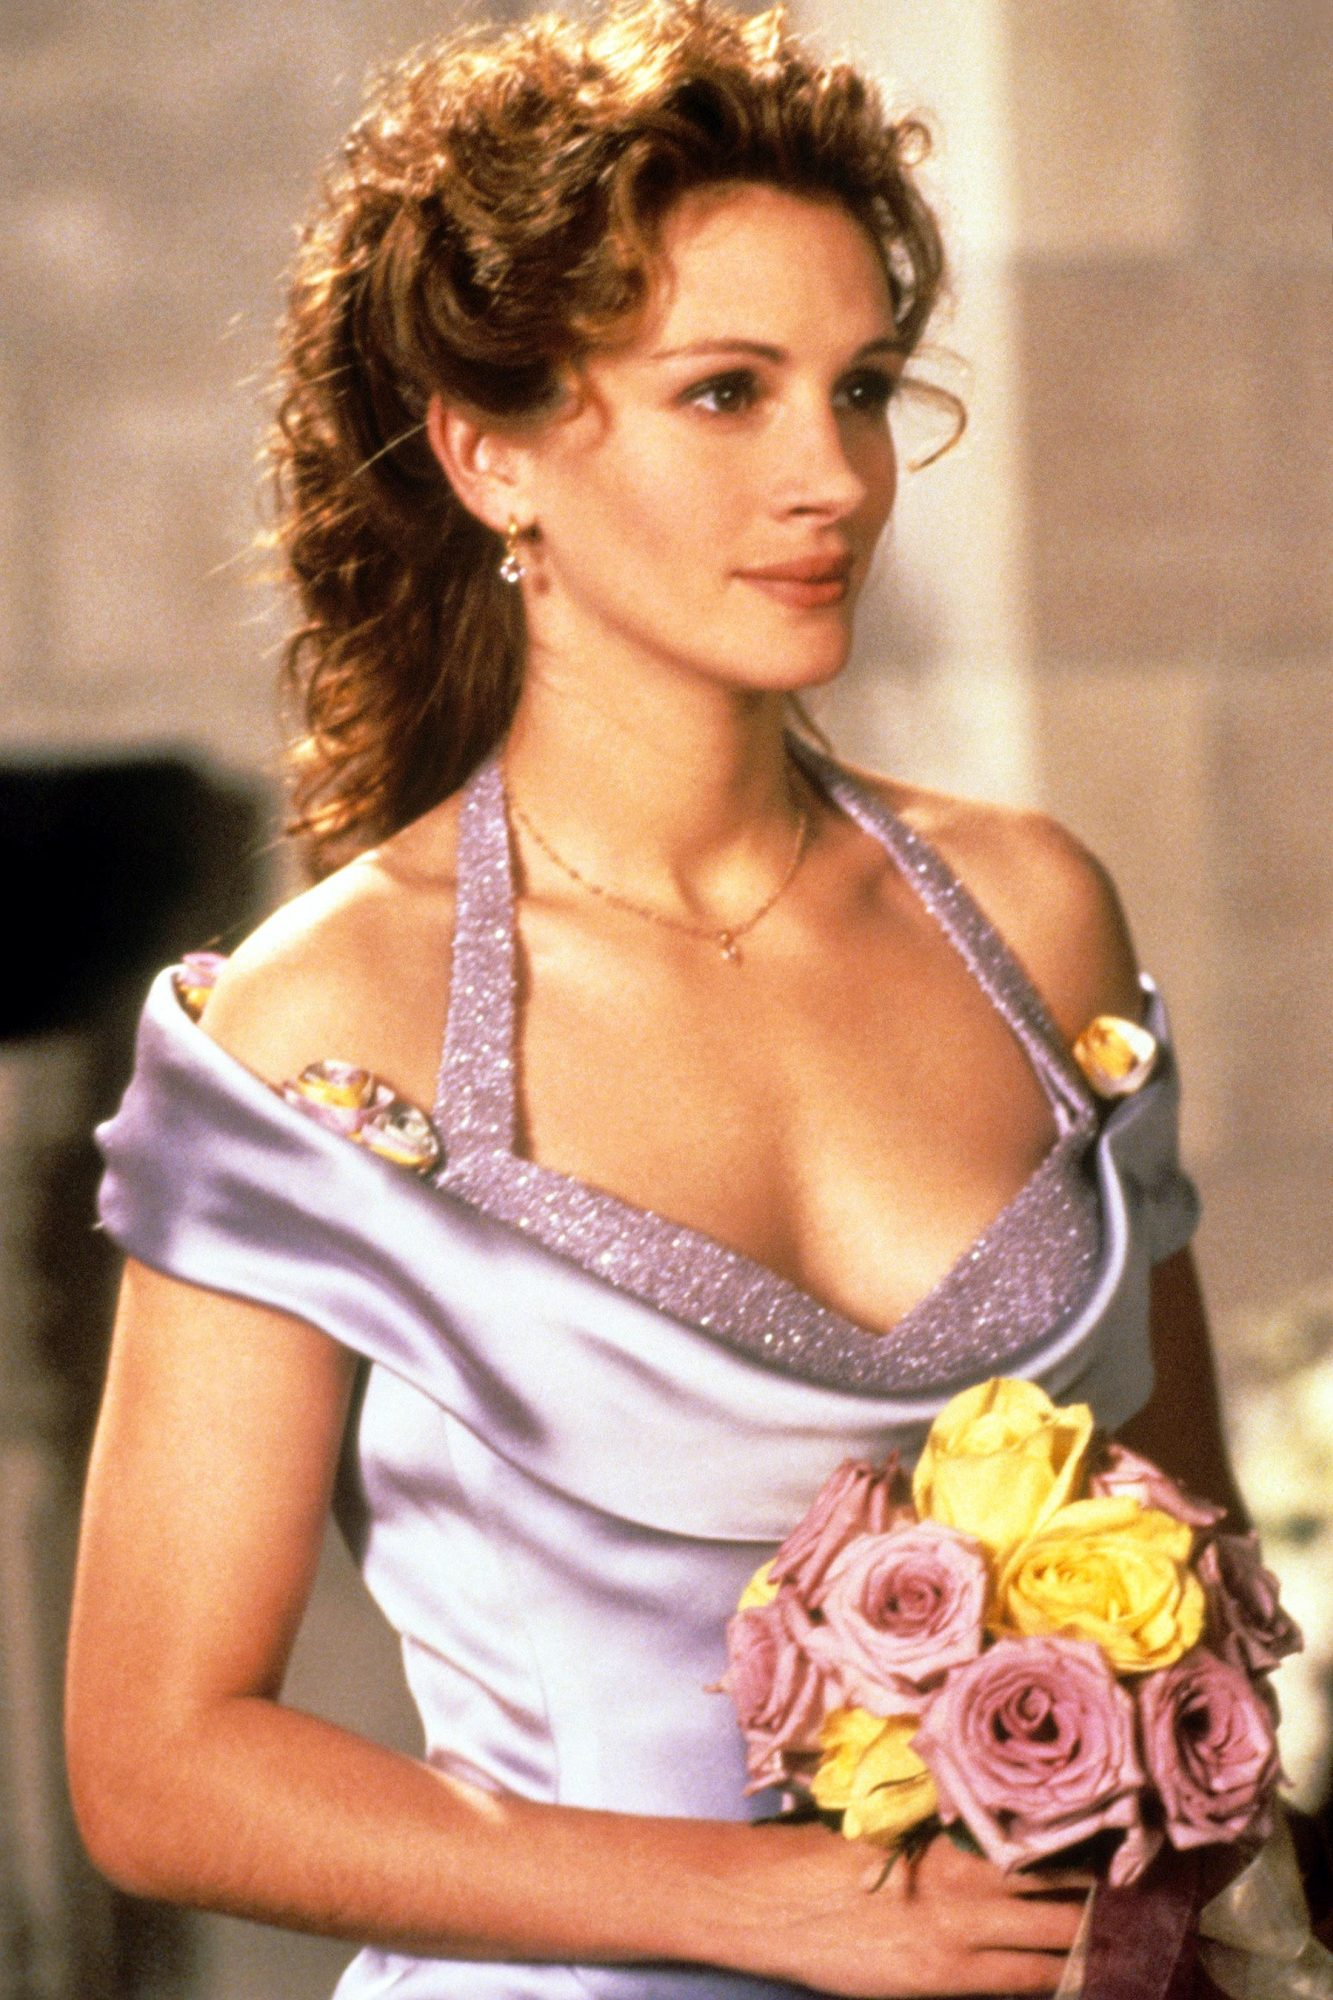 MY BEST FRIEND'S WEDDING, Julia Roberts, 1997, (c) TriStar/courtesy Everett Collection